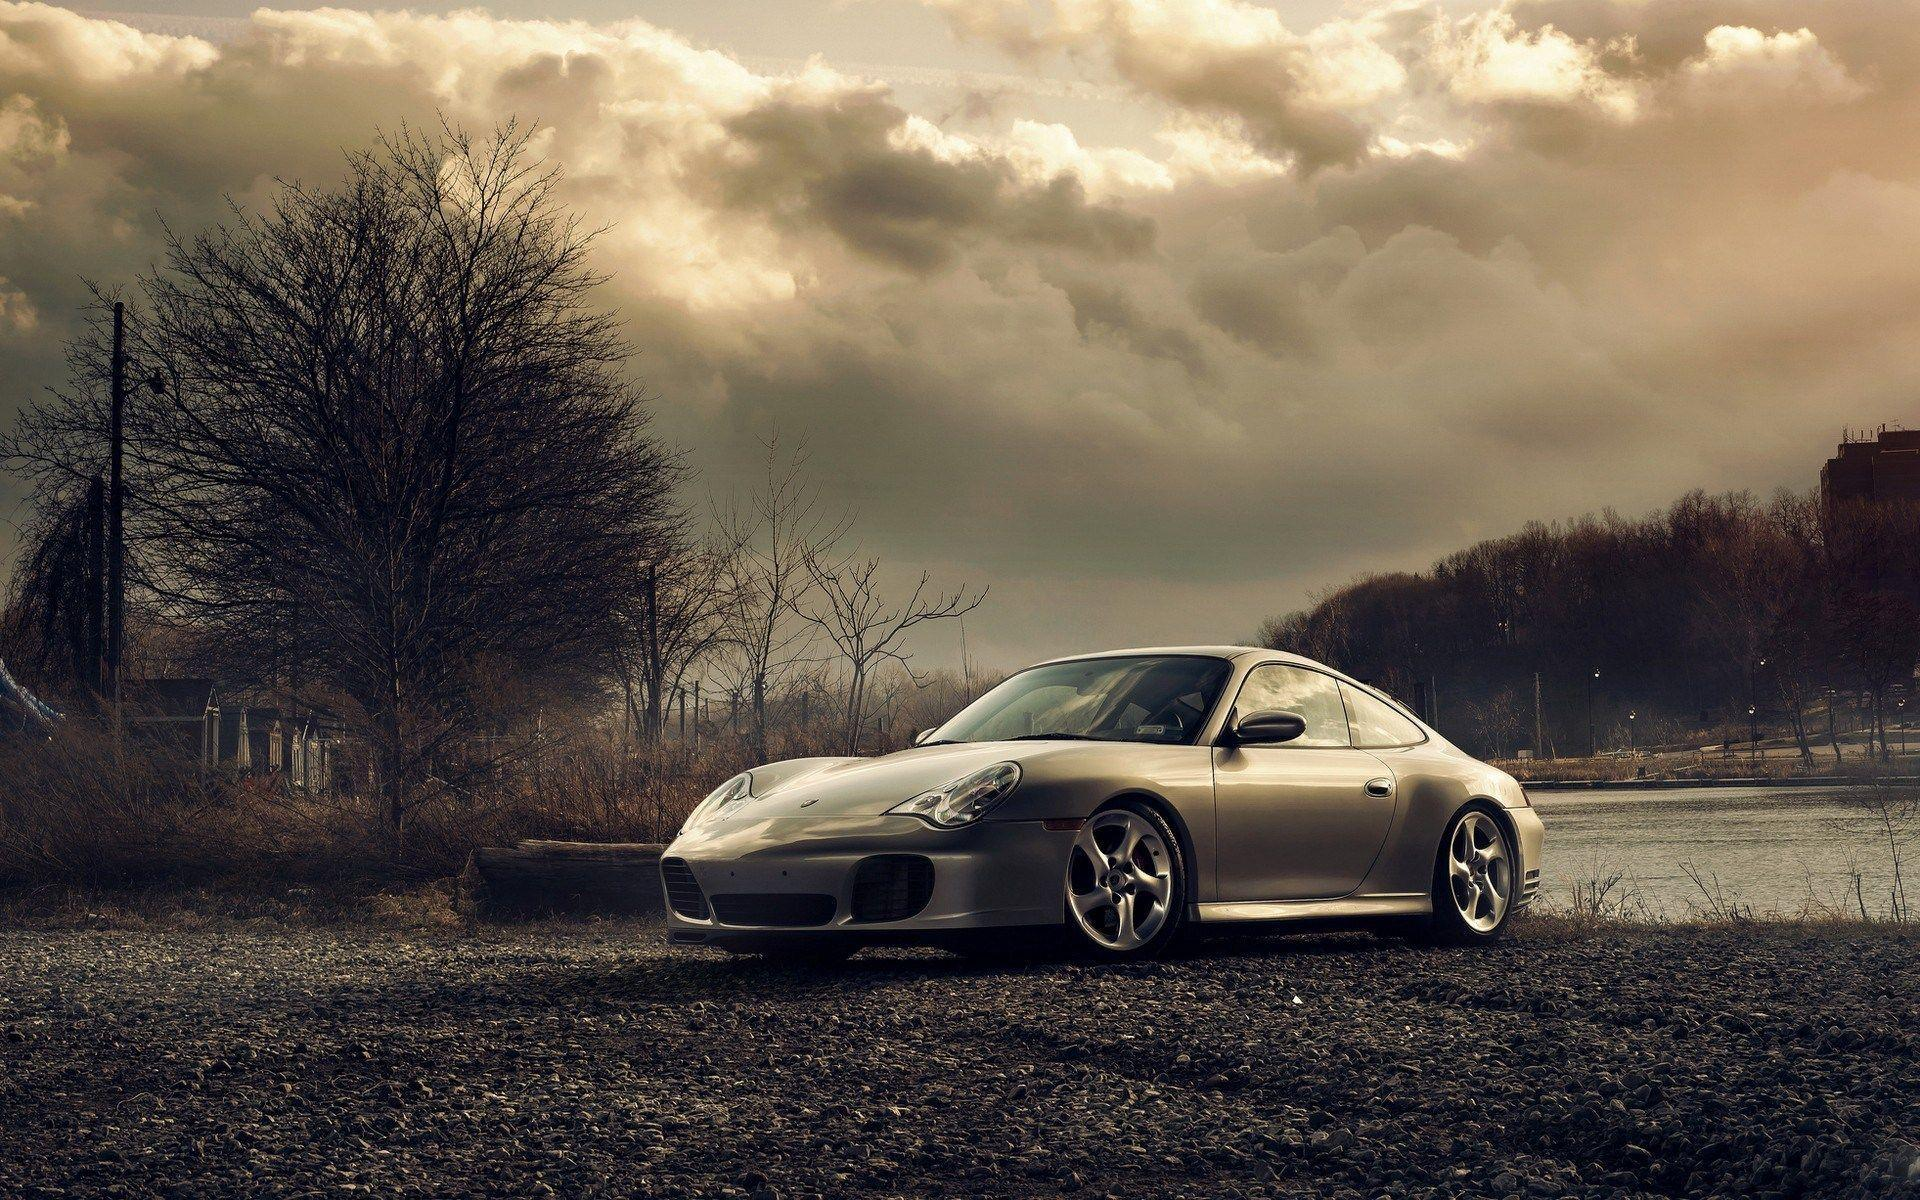 Porsche 911 Wallpapers - Full HD wallpaper search